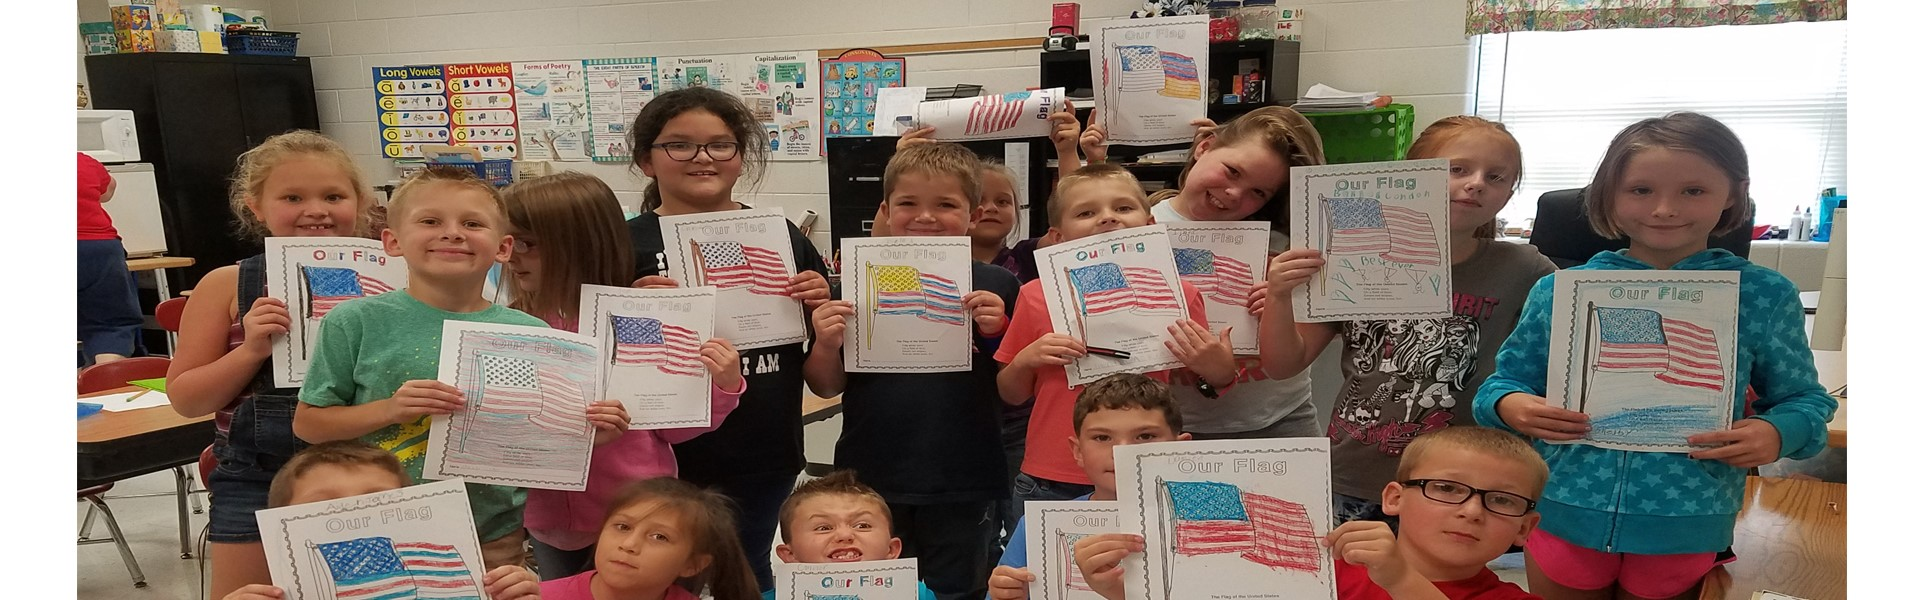 Mrs. Barbara Cox's class showing support for 911